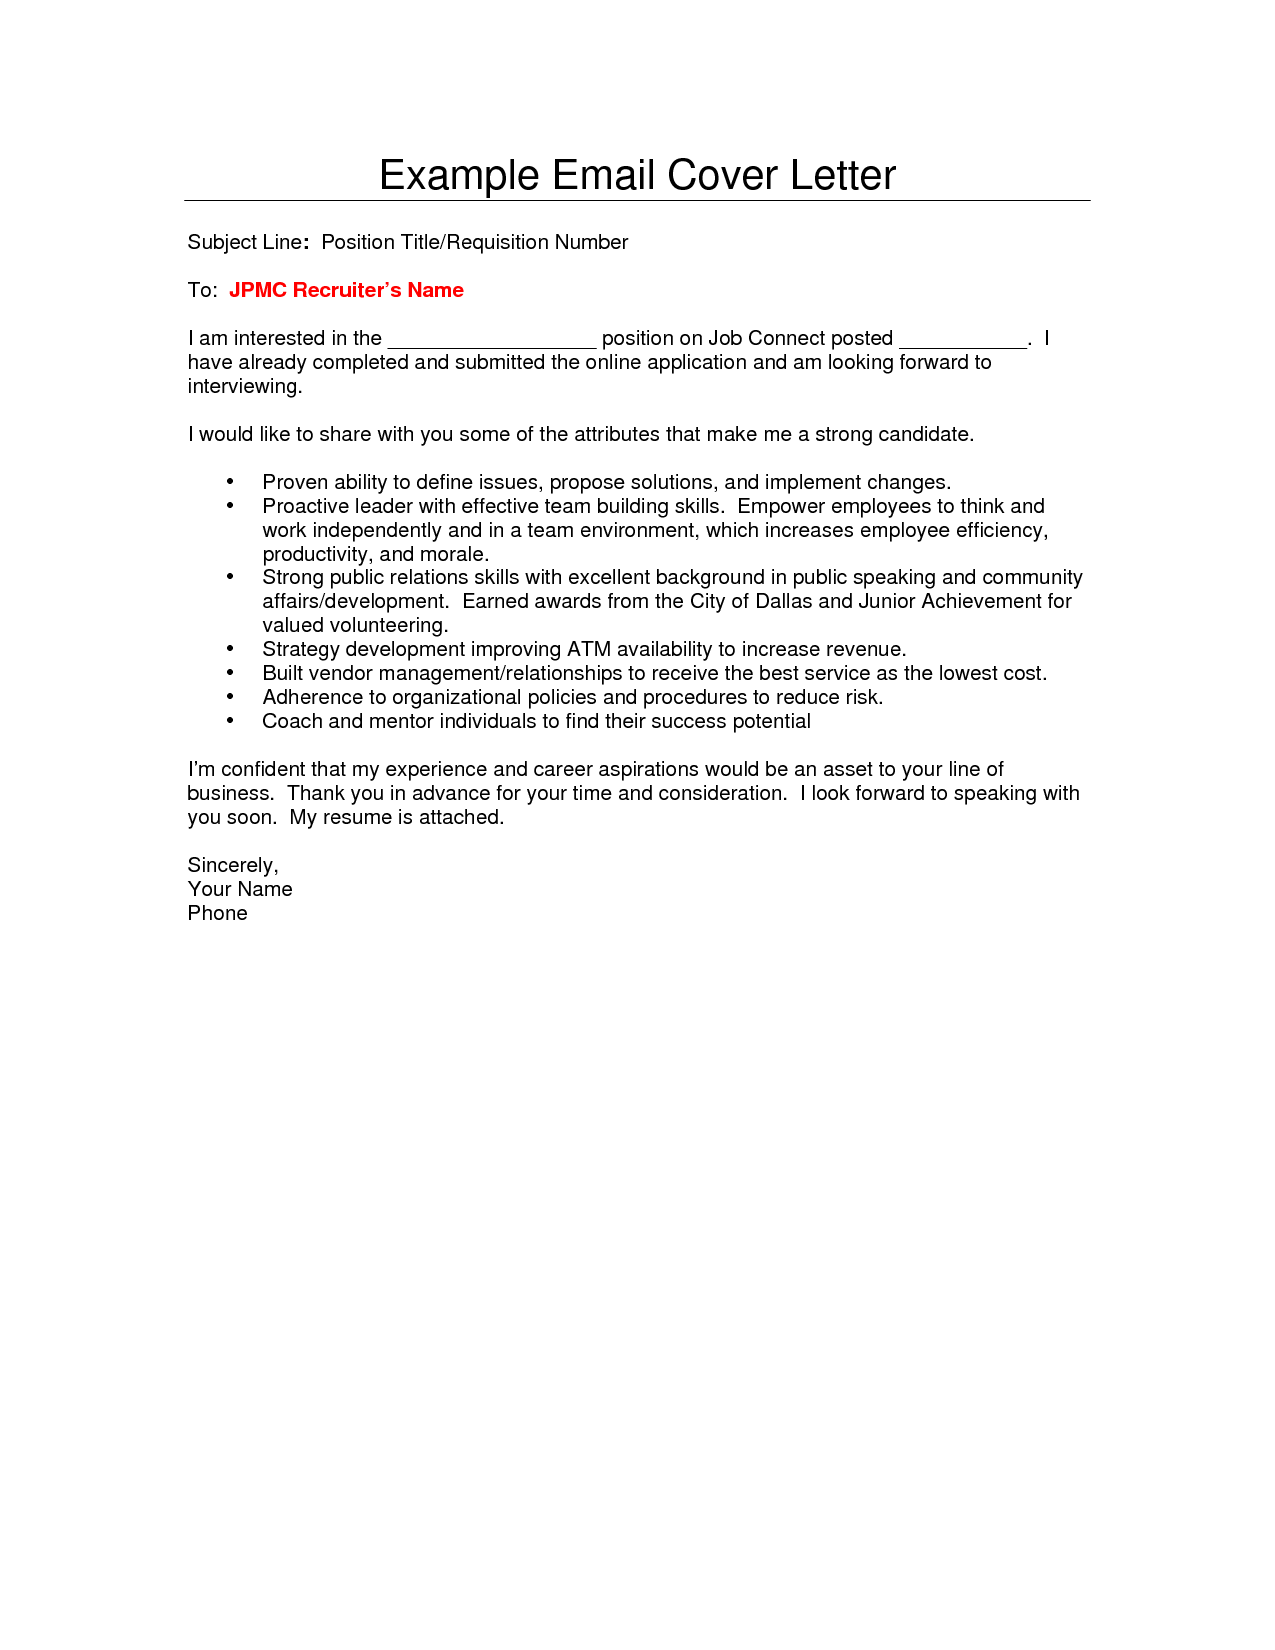 How To Write Resume Email Cover Letter Sample Cover Letter